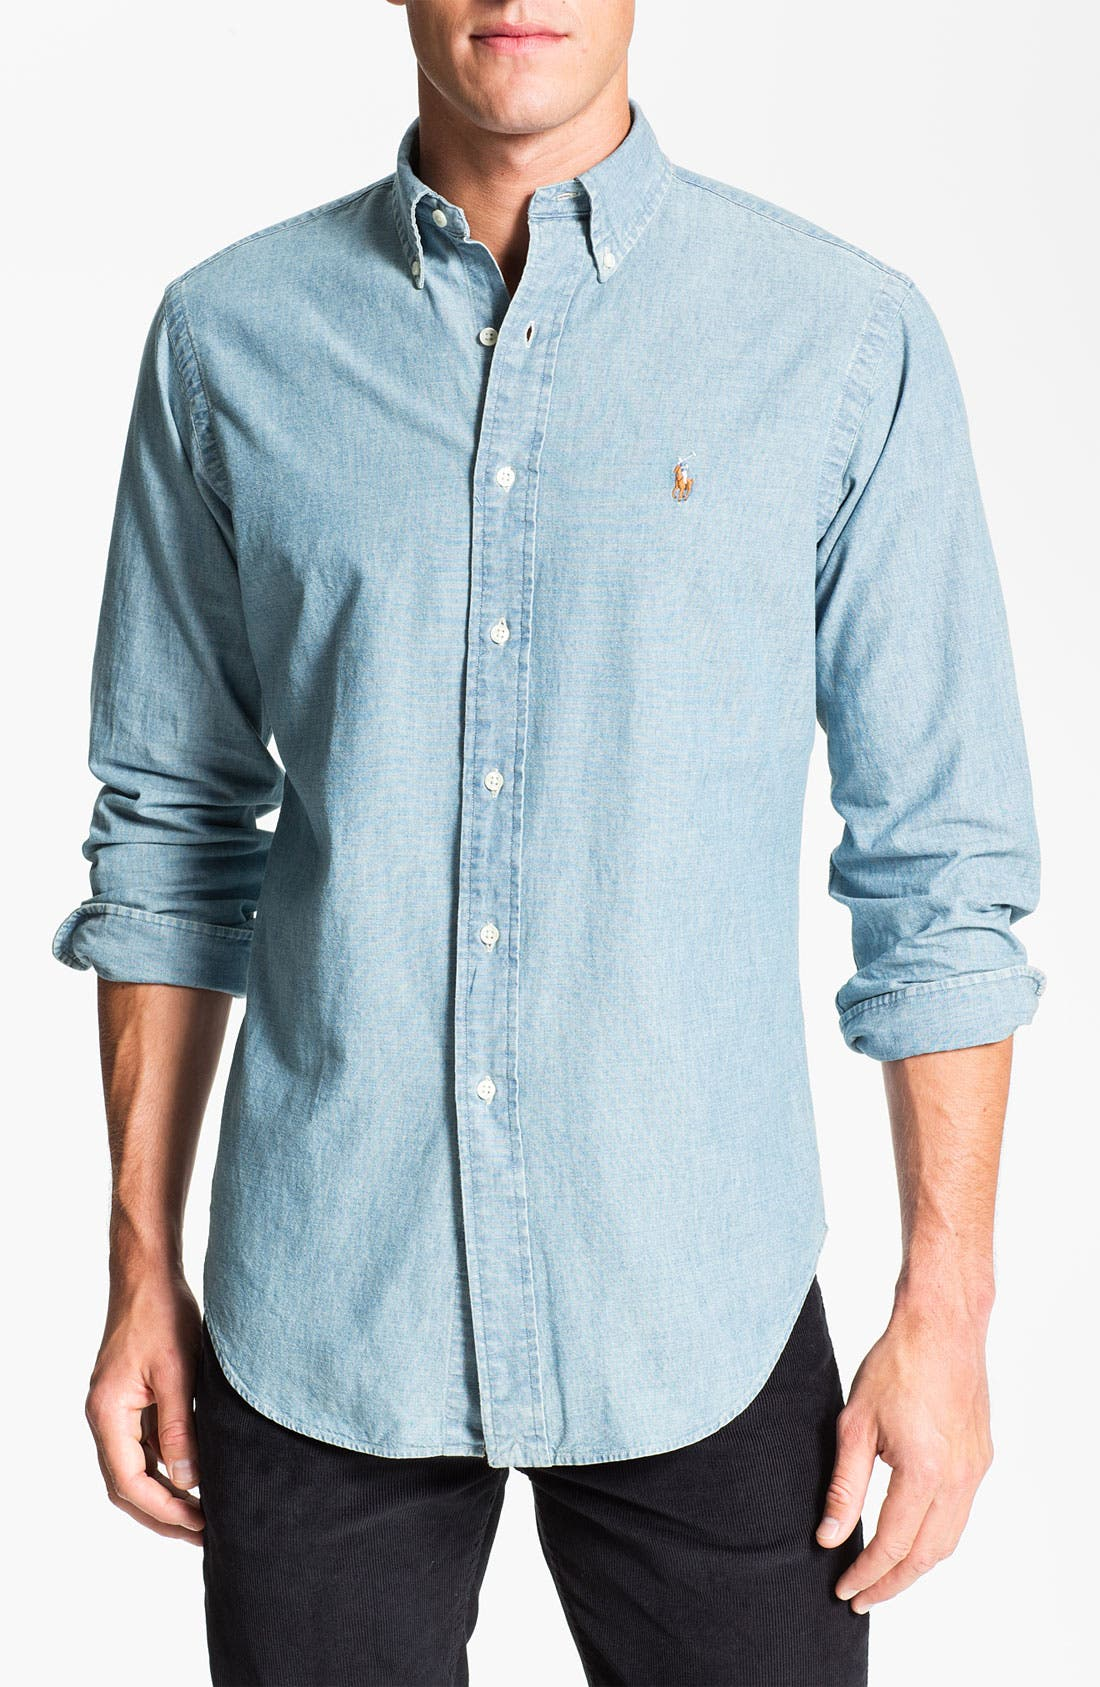 Alternate Image 1 Selected - Polo Ralph Lauren Classic Fit Chambray Sport Shirt